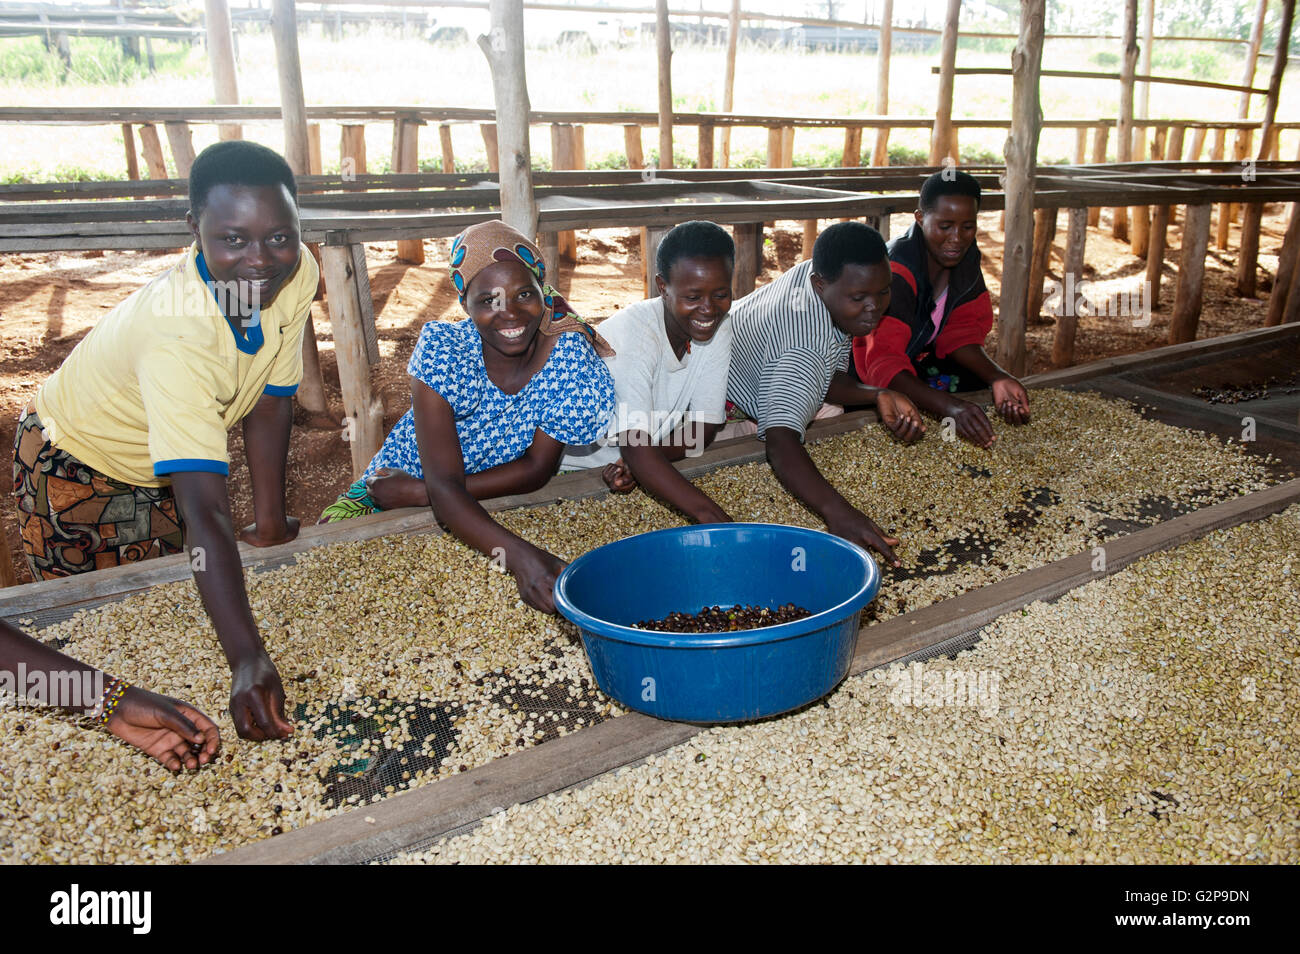 Workers sorting out coffee beans and picking out unshelled beans by hand. Rwanda. - Stock Image